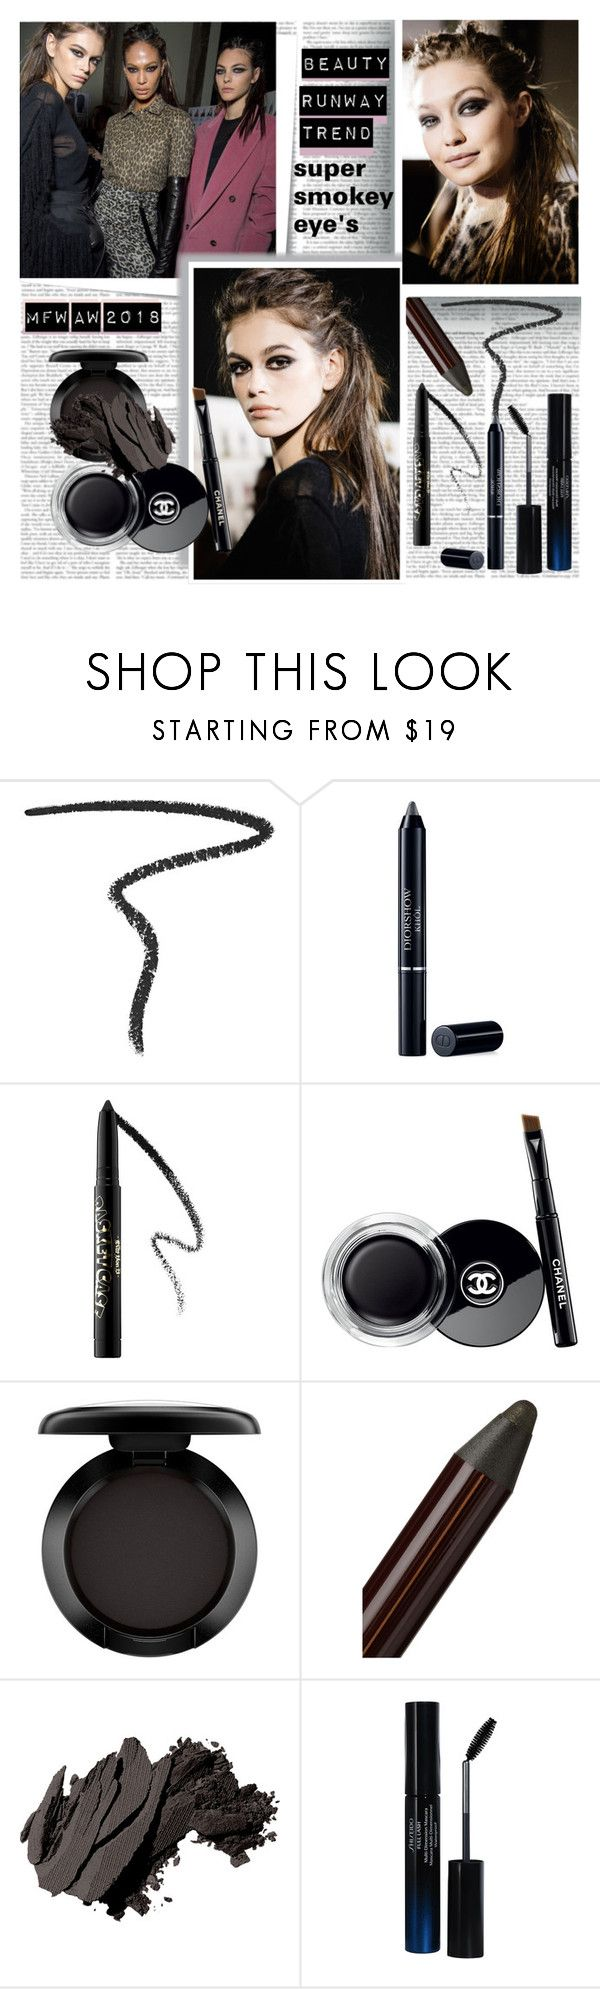 """Runaway Trend Super Smokey eyes"" by stylepersonal ❤ liked on Polyvore featuring beauty, Post-It, By Terry, Christian Dior, Kat Von D, Chanel, MAC Cosmetics, Charlotte Tilbury, Bobbi Brown Cosmetics and John Lewis"